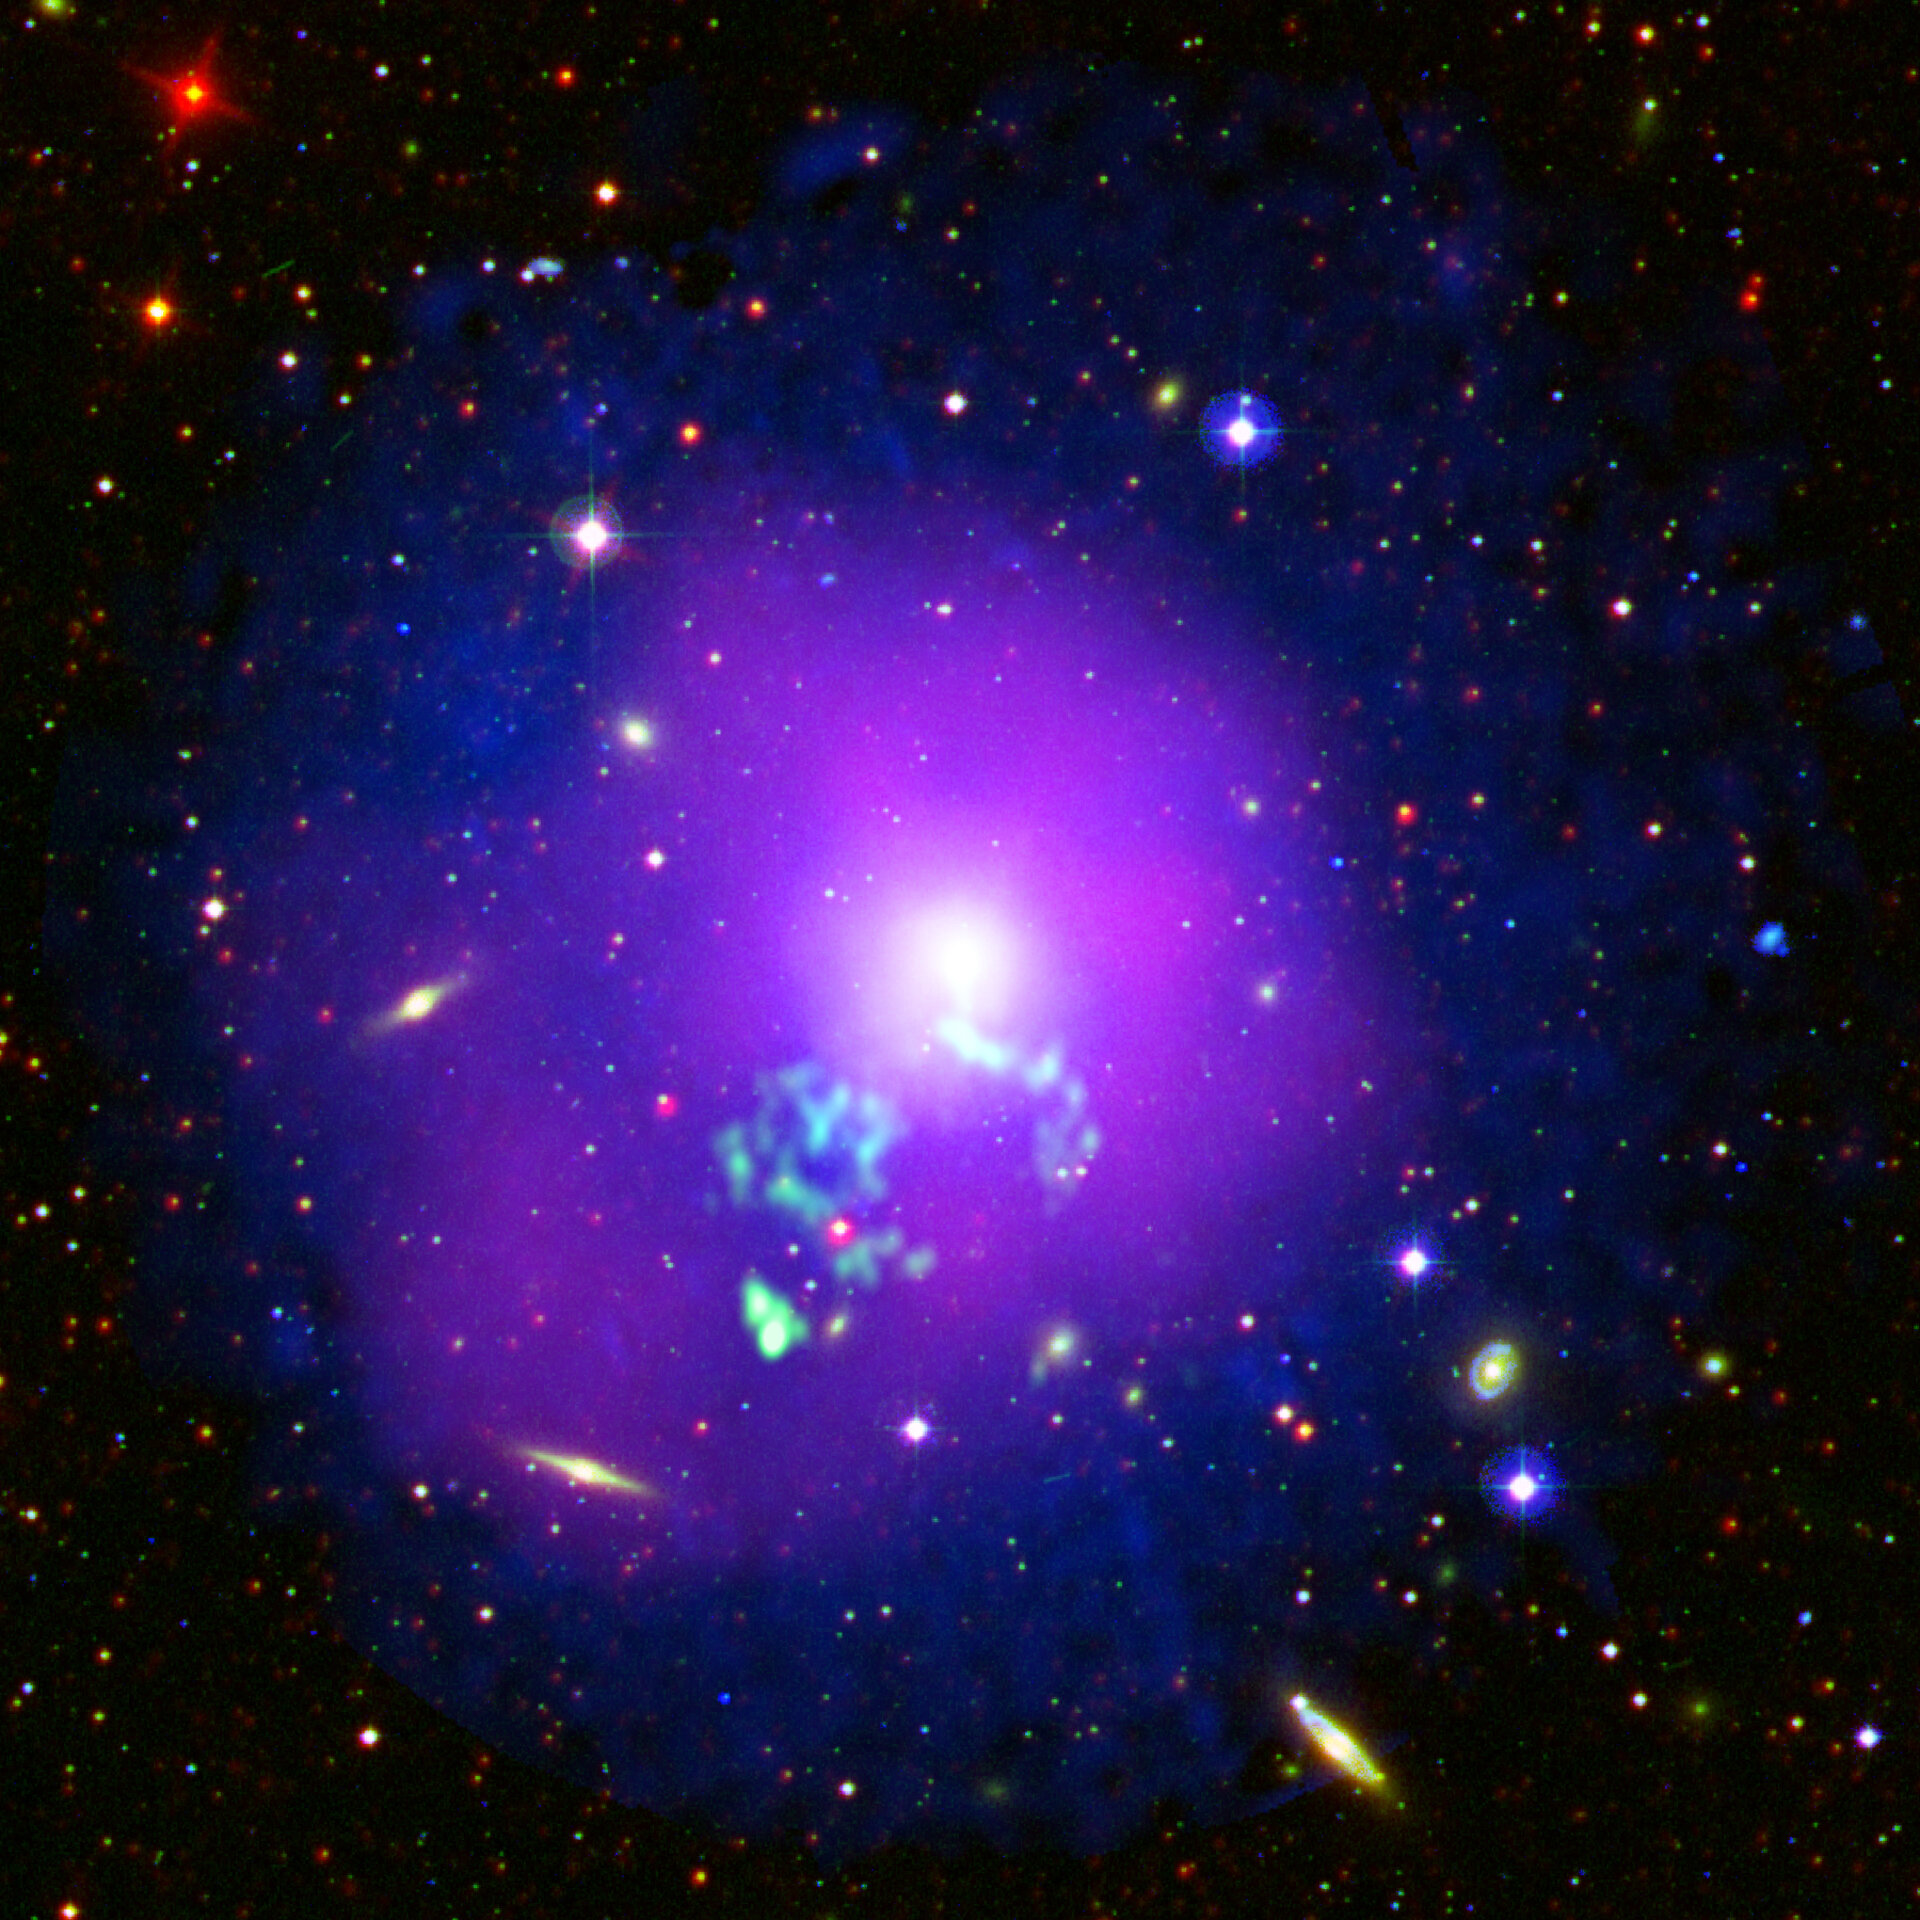 Hot gas sloshing in a galactic cauldron